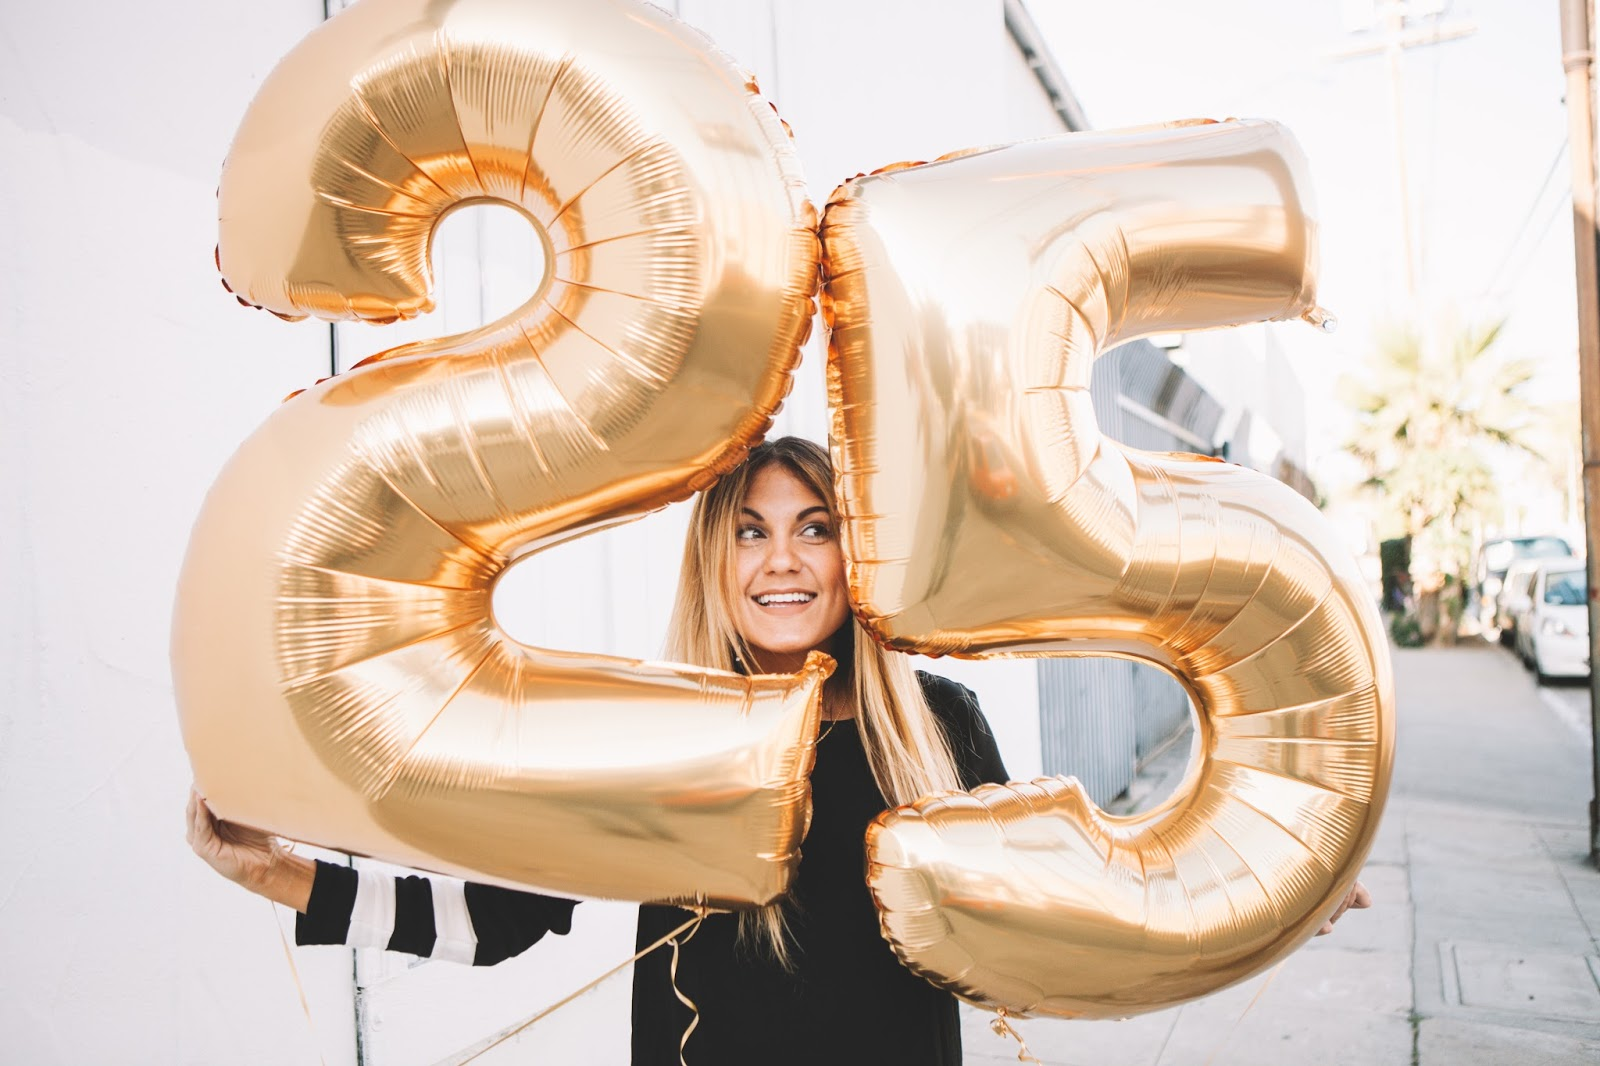 Gold Balloons for my 25th Birthday! | My Cup of Chic